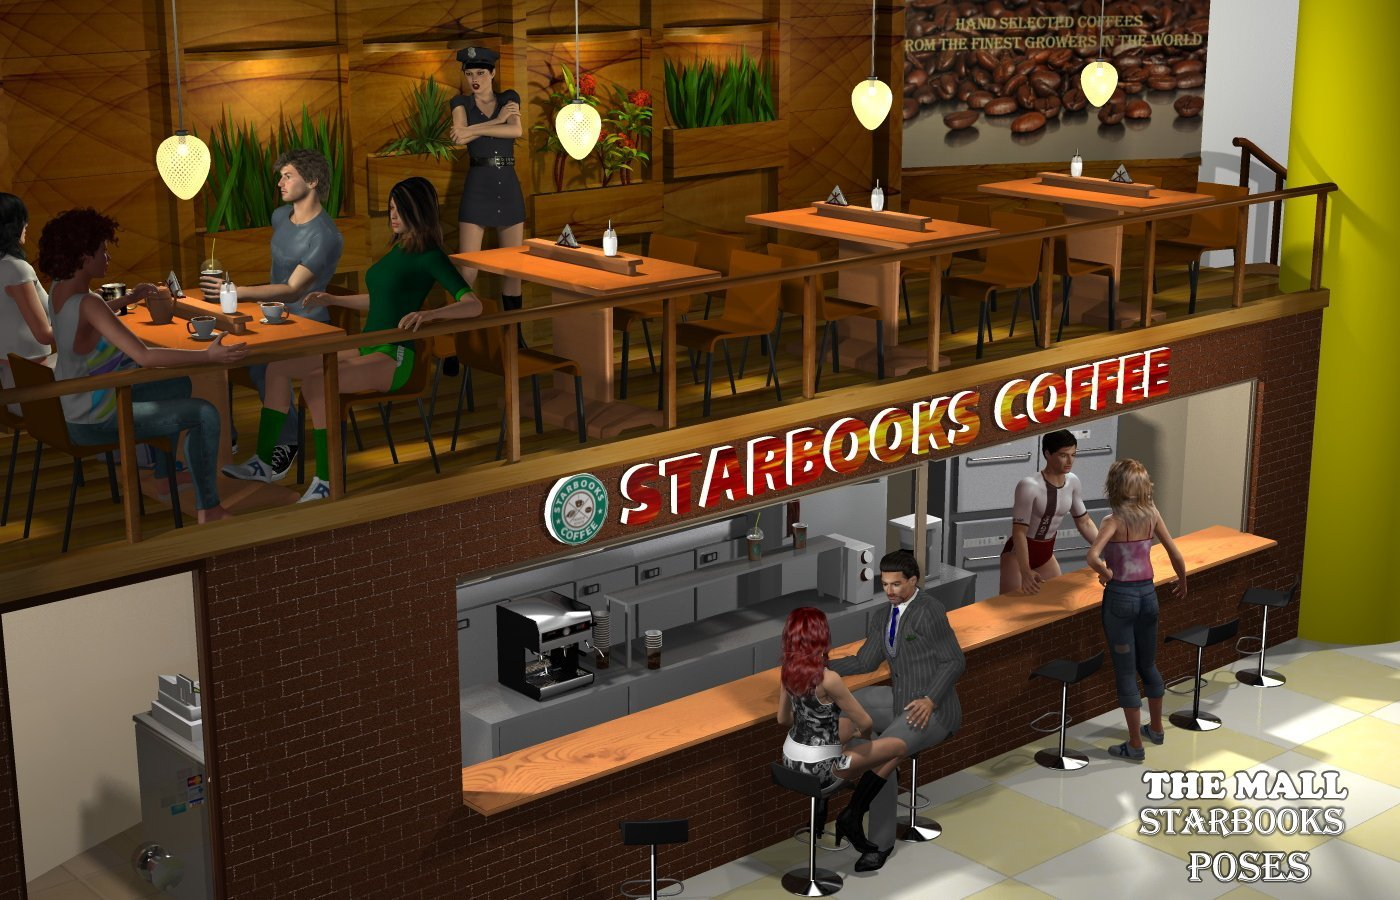 The Mall Starbooks poses by greenpots